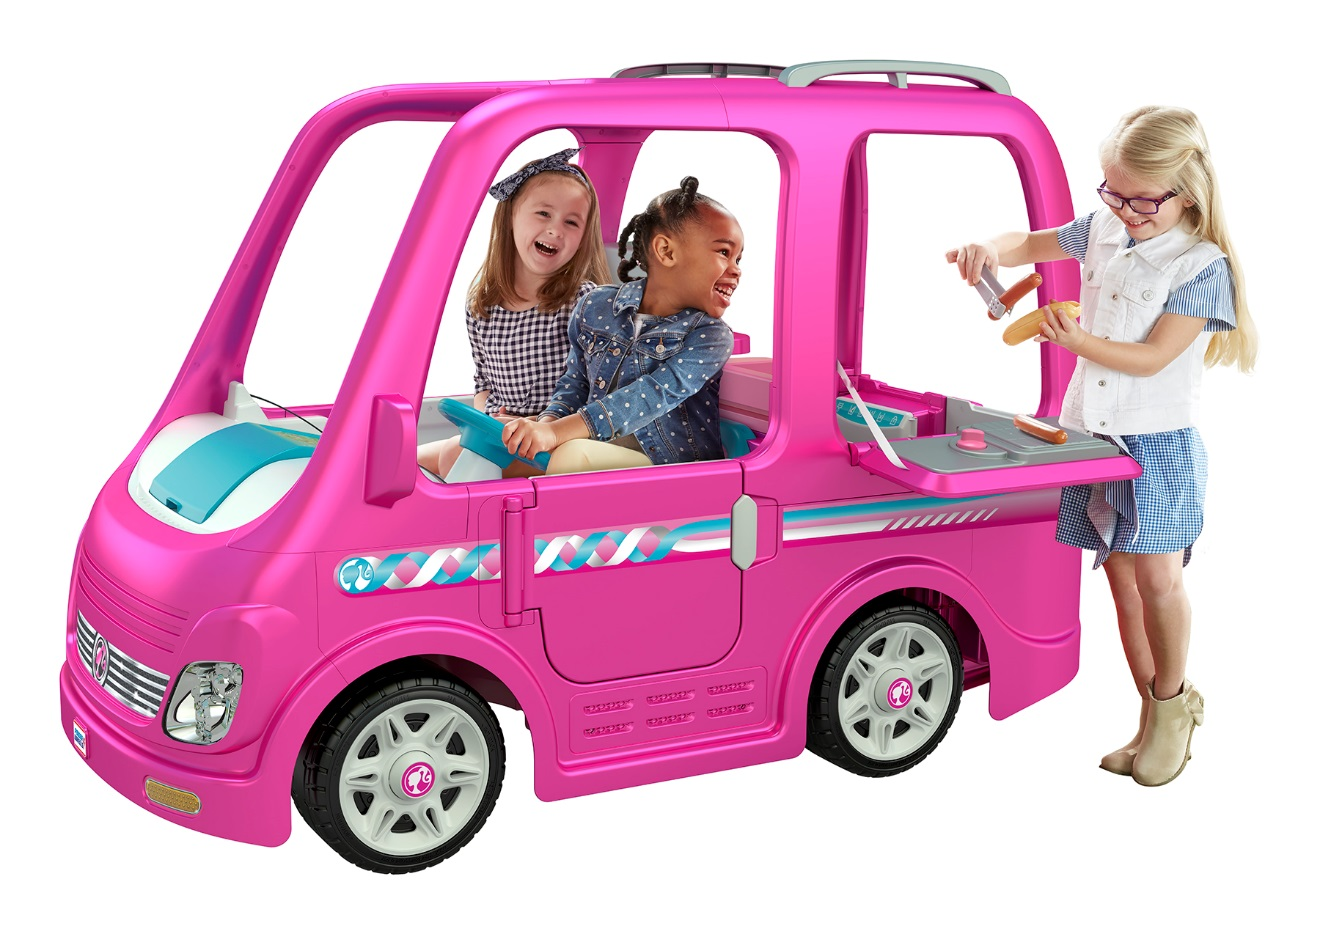 Recalled Power Wheels Barbie Dream Camper